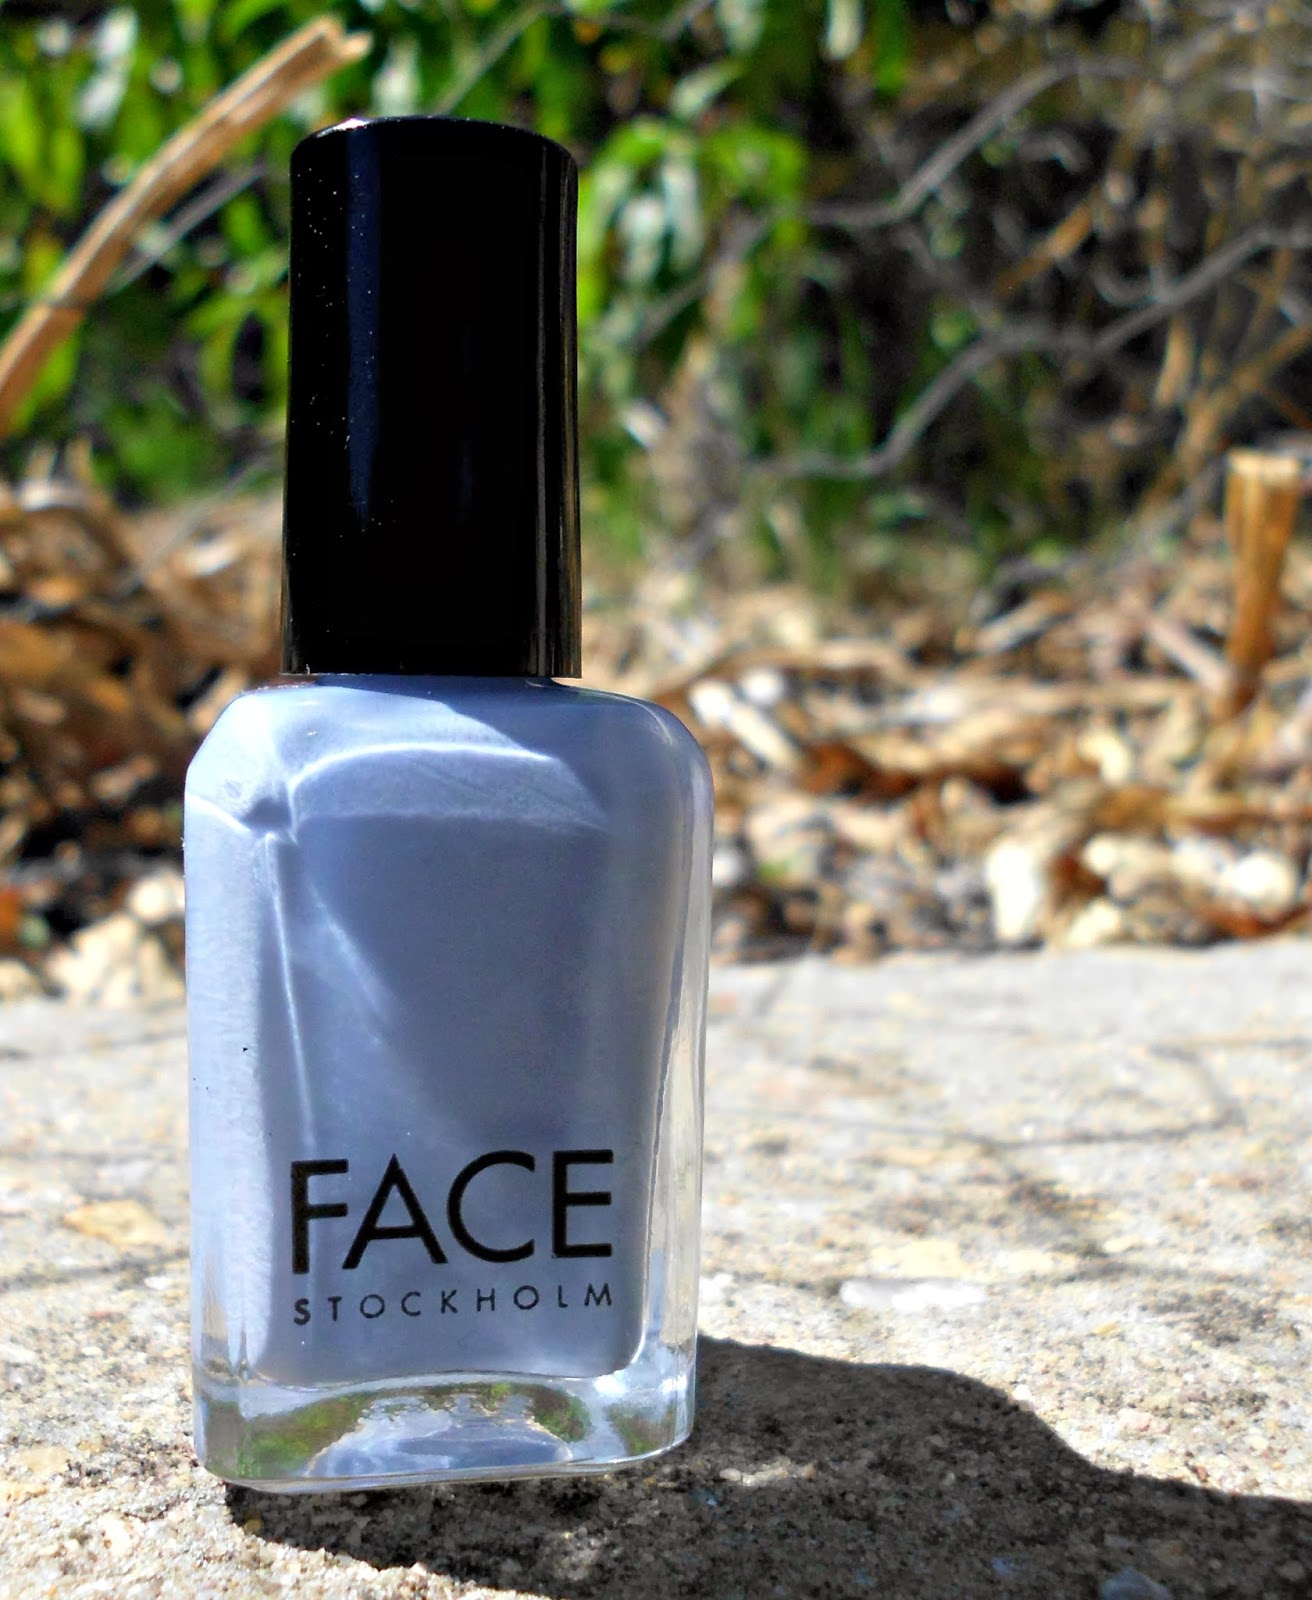 YouReview: NOTD - Face Stockholm nail polish in Want-a-blue